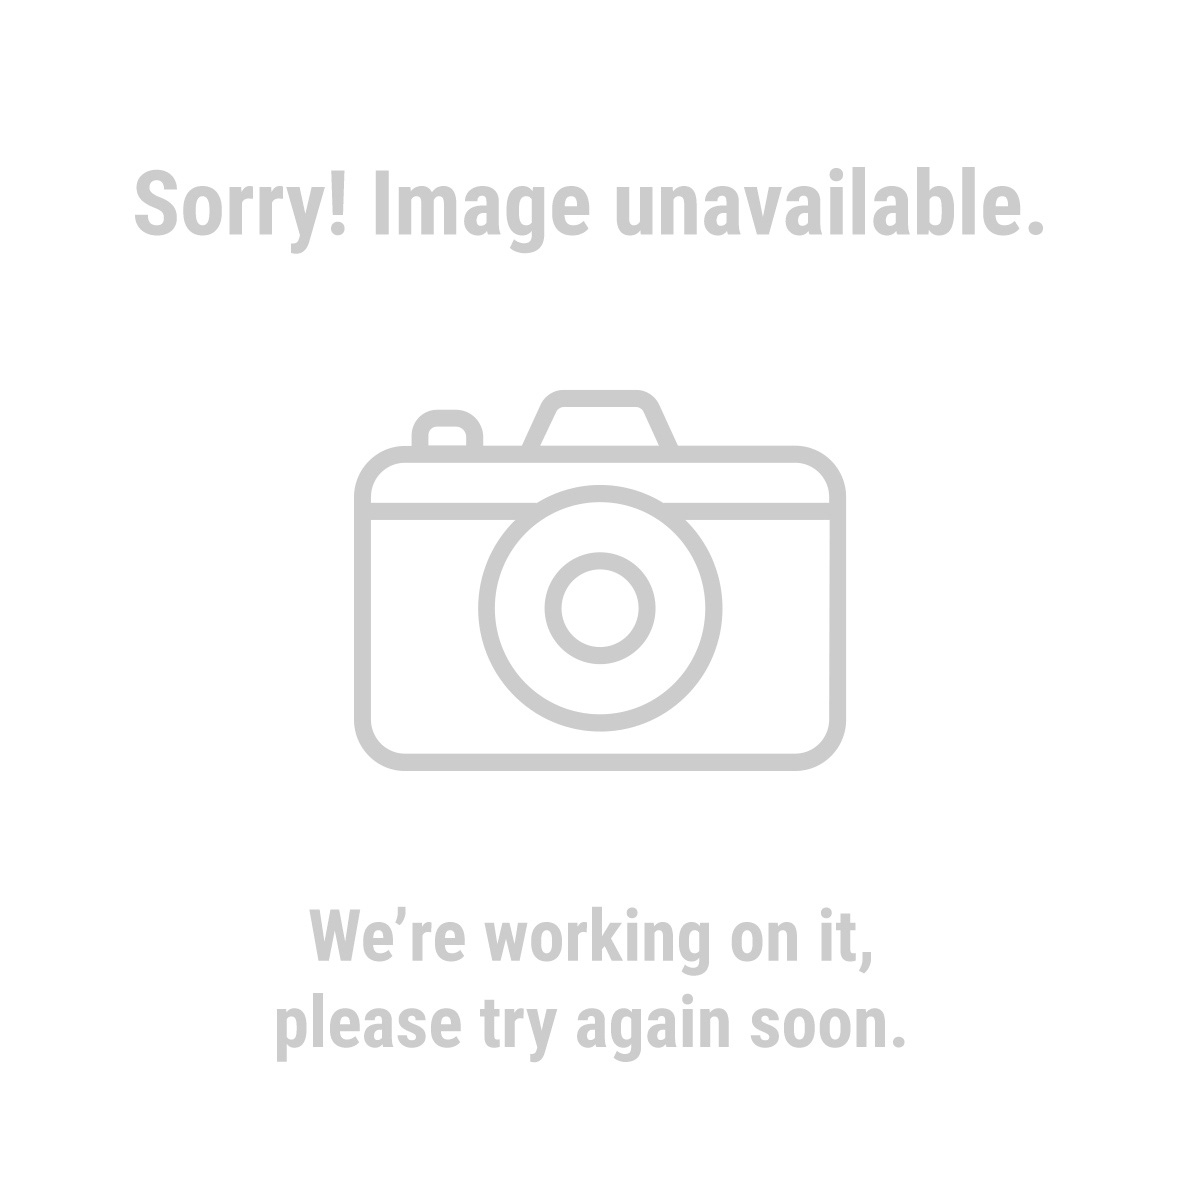 Bauer 63440 12.5 Amp SDS Max Type Pro Demolition Hammer Kit